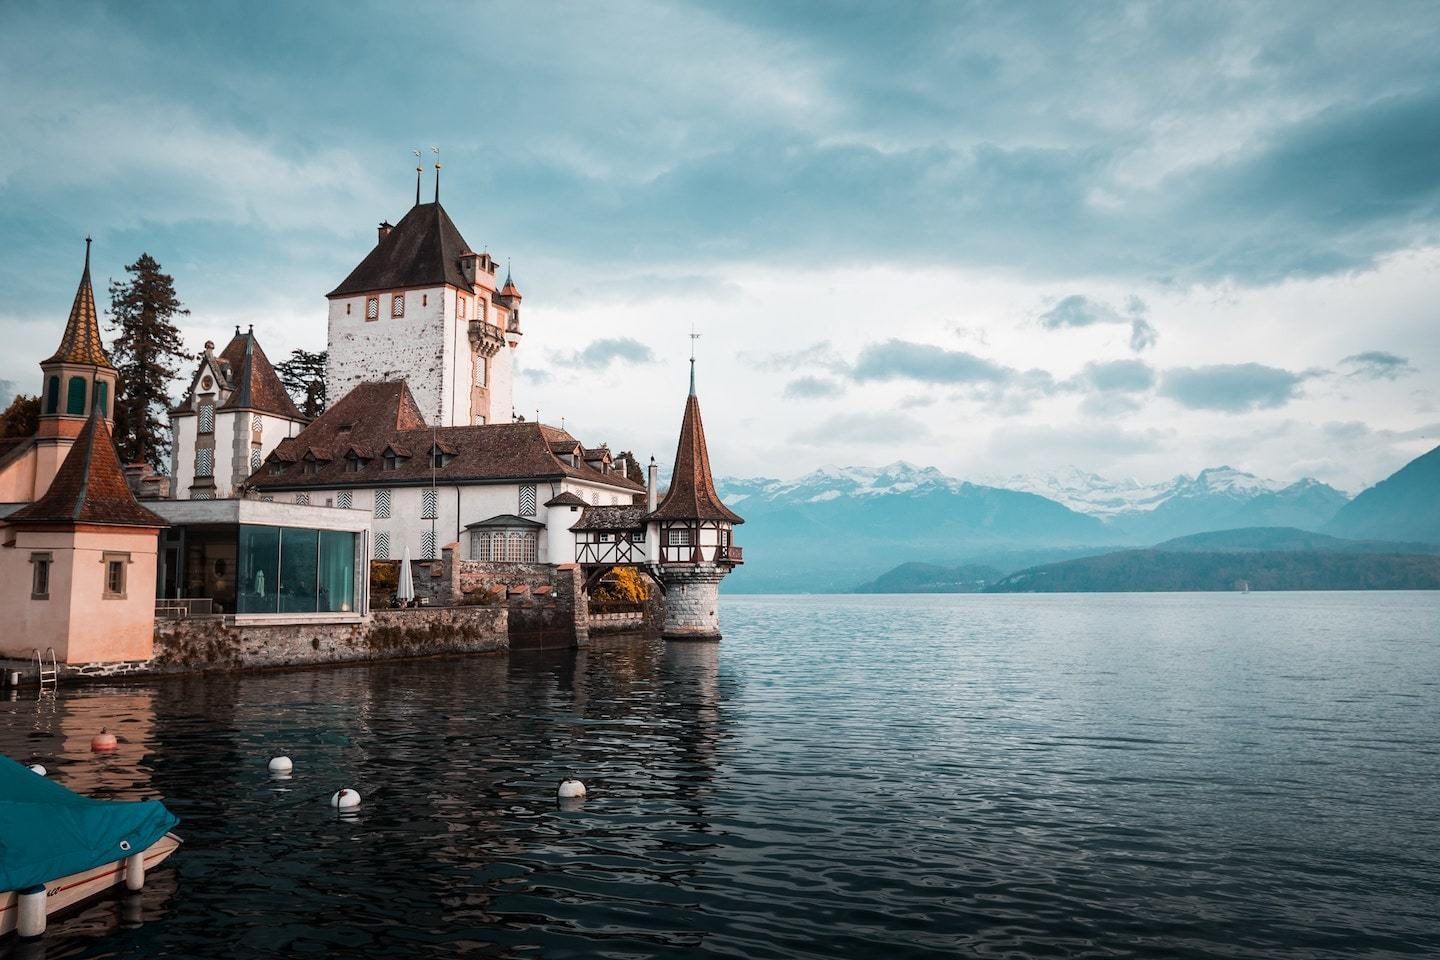 view of Oberhofen Castle interlaken with water